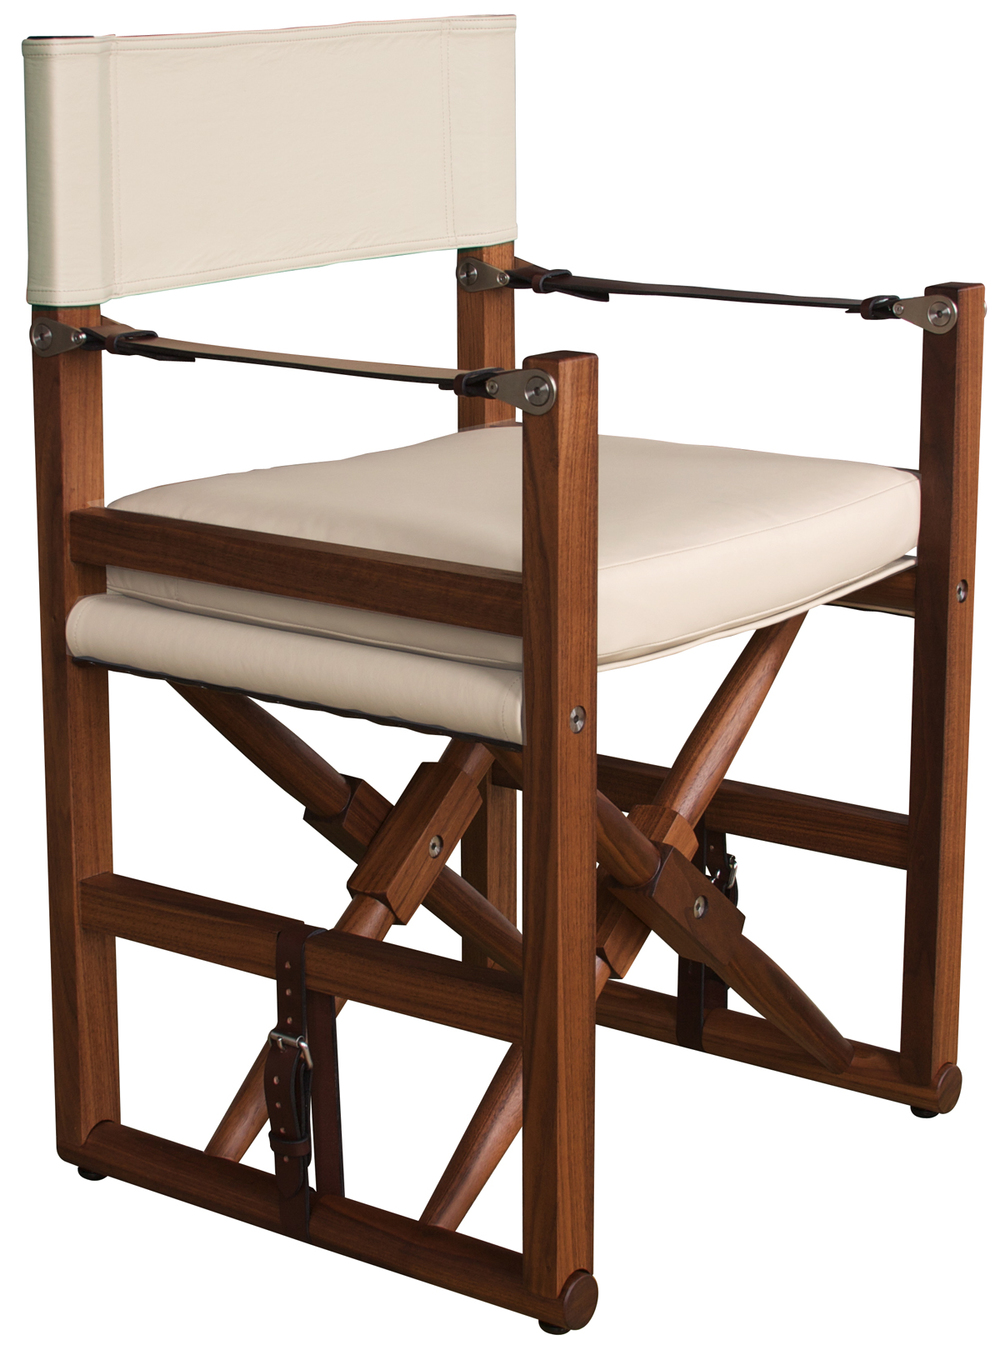 Cabourn Folding Chair  Oiled walnut with Moore & Giles Notting Hill: vellum and havana English bridle leather strapping